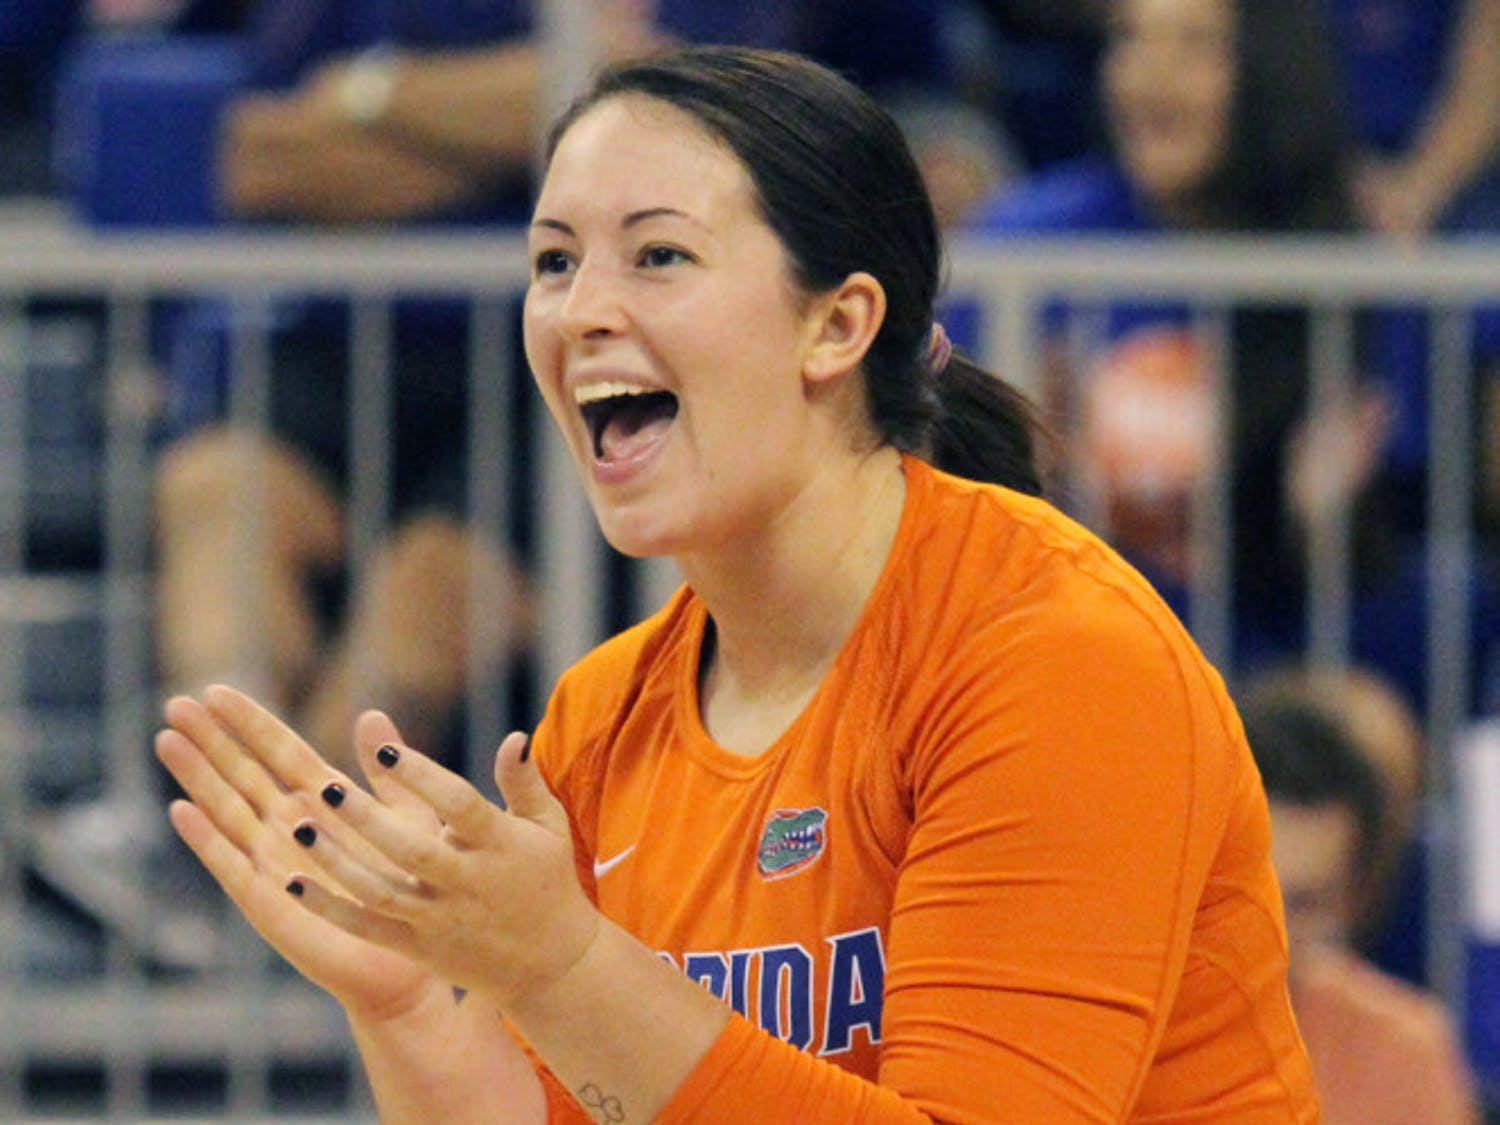 Junior libero Taylor Unroe reacts to a play during Florida's three-set victory against FSU on Sept. 17 in the O'Connell Center.